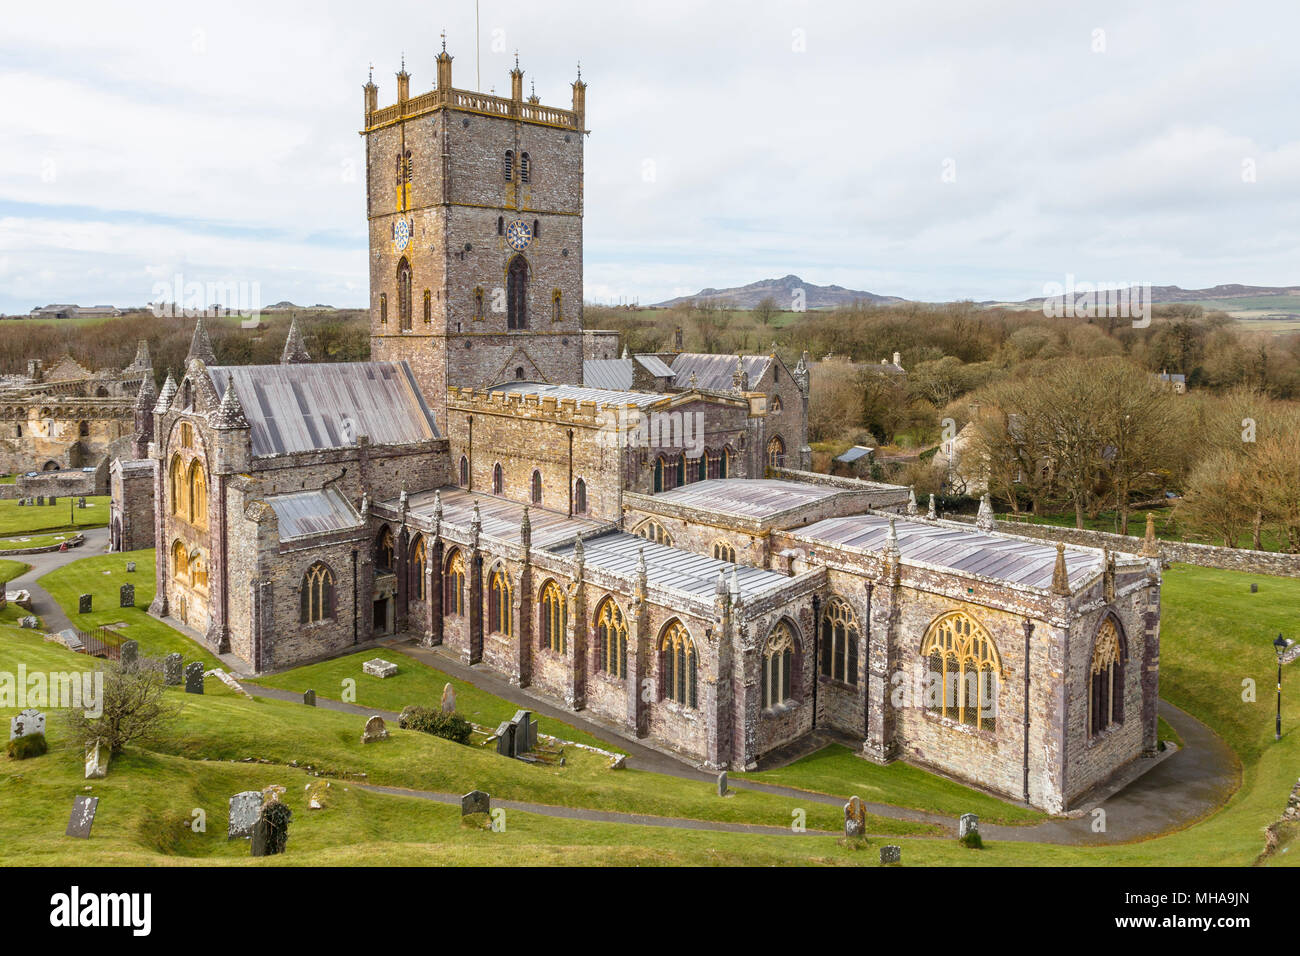 St David's Cathedral, in St Davids, Pembrokeshire. The smallest city in the UK.. Stock Photo